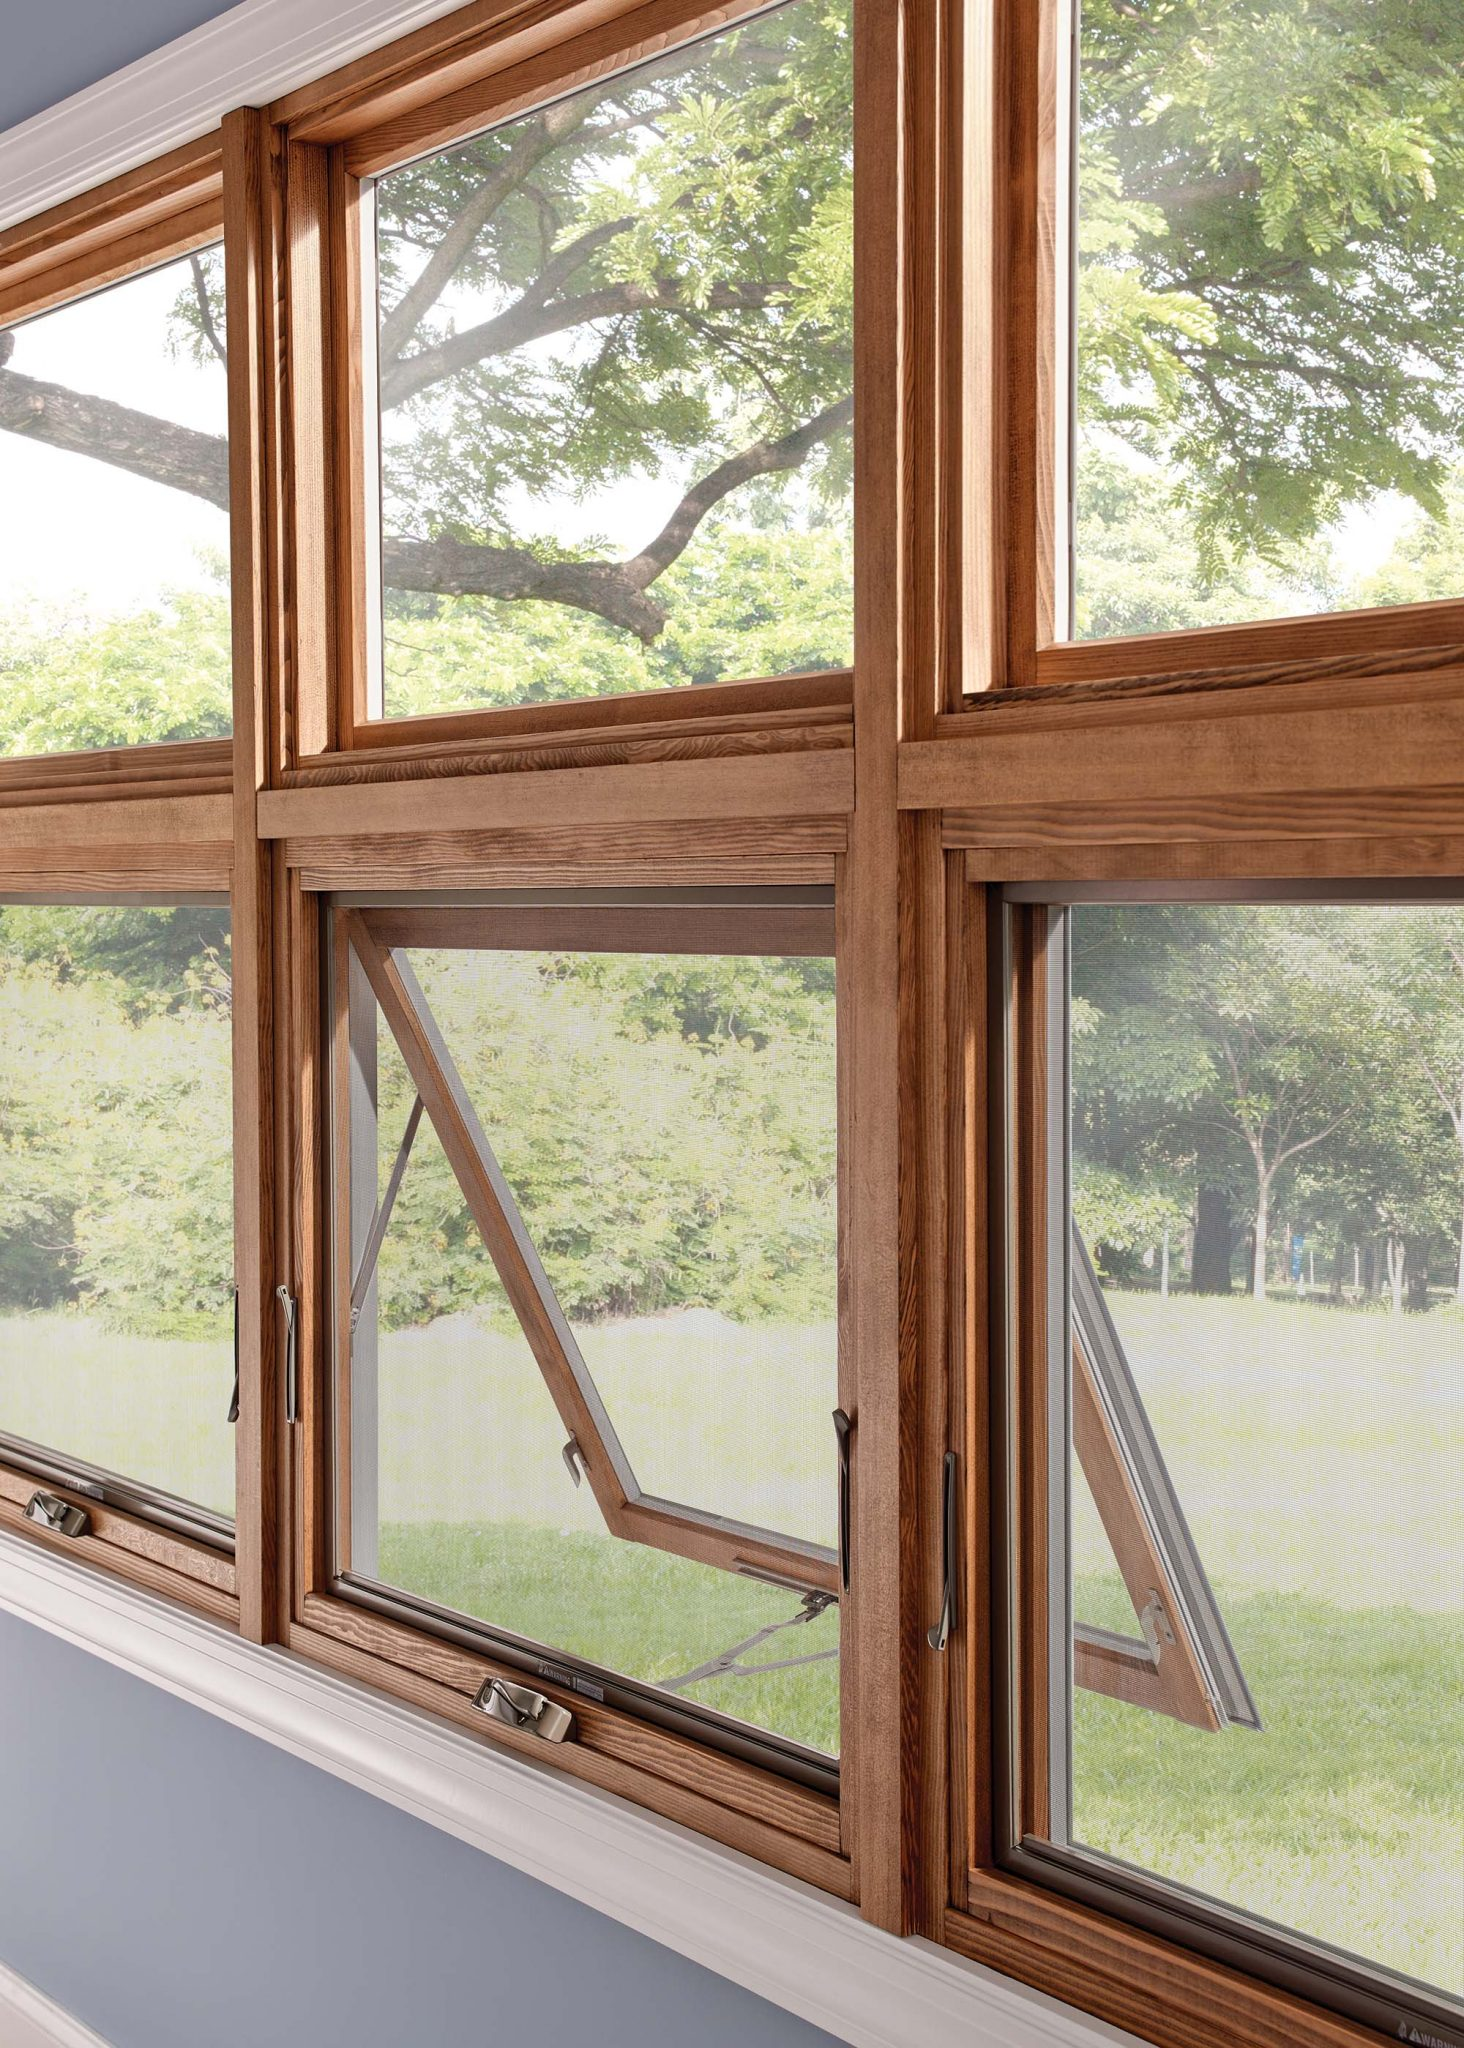 Wood frame swing open window